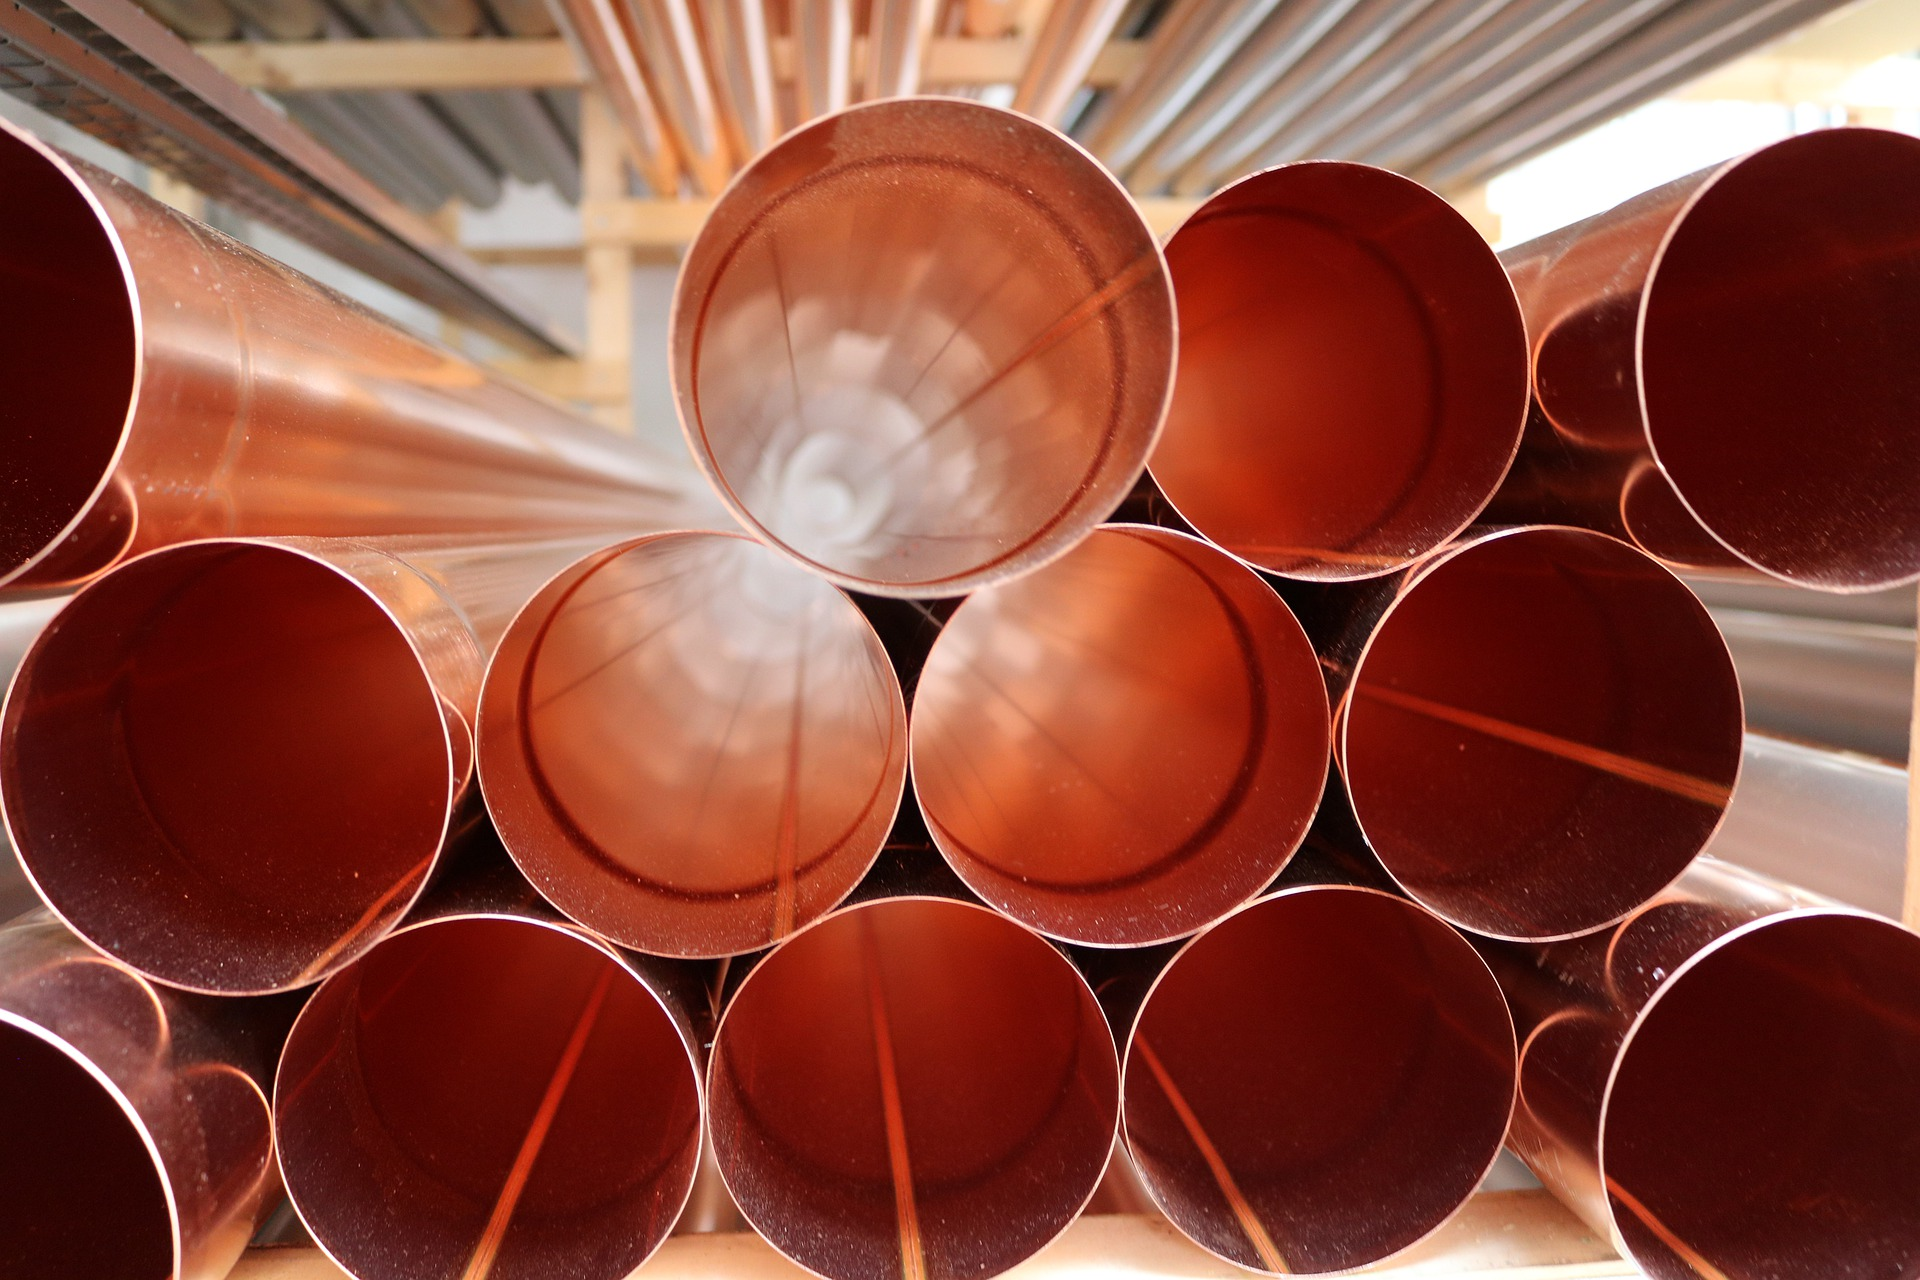 Copper kills up to 99.9% of bacteria on transit surfaces